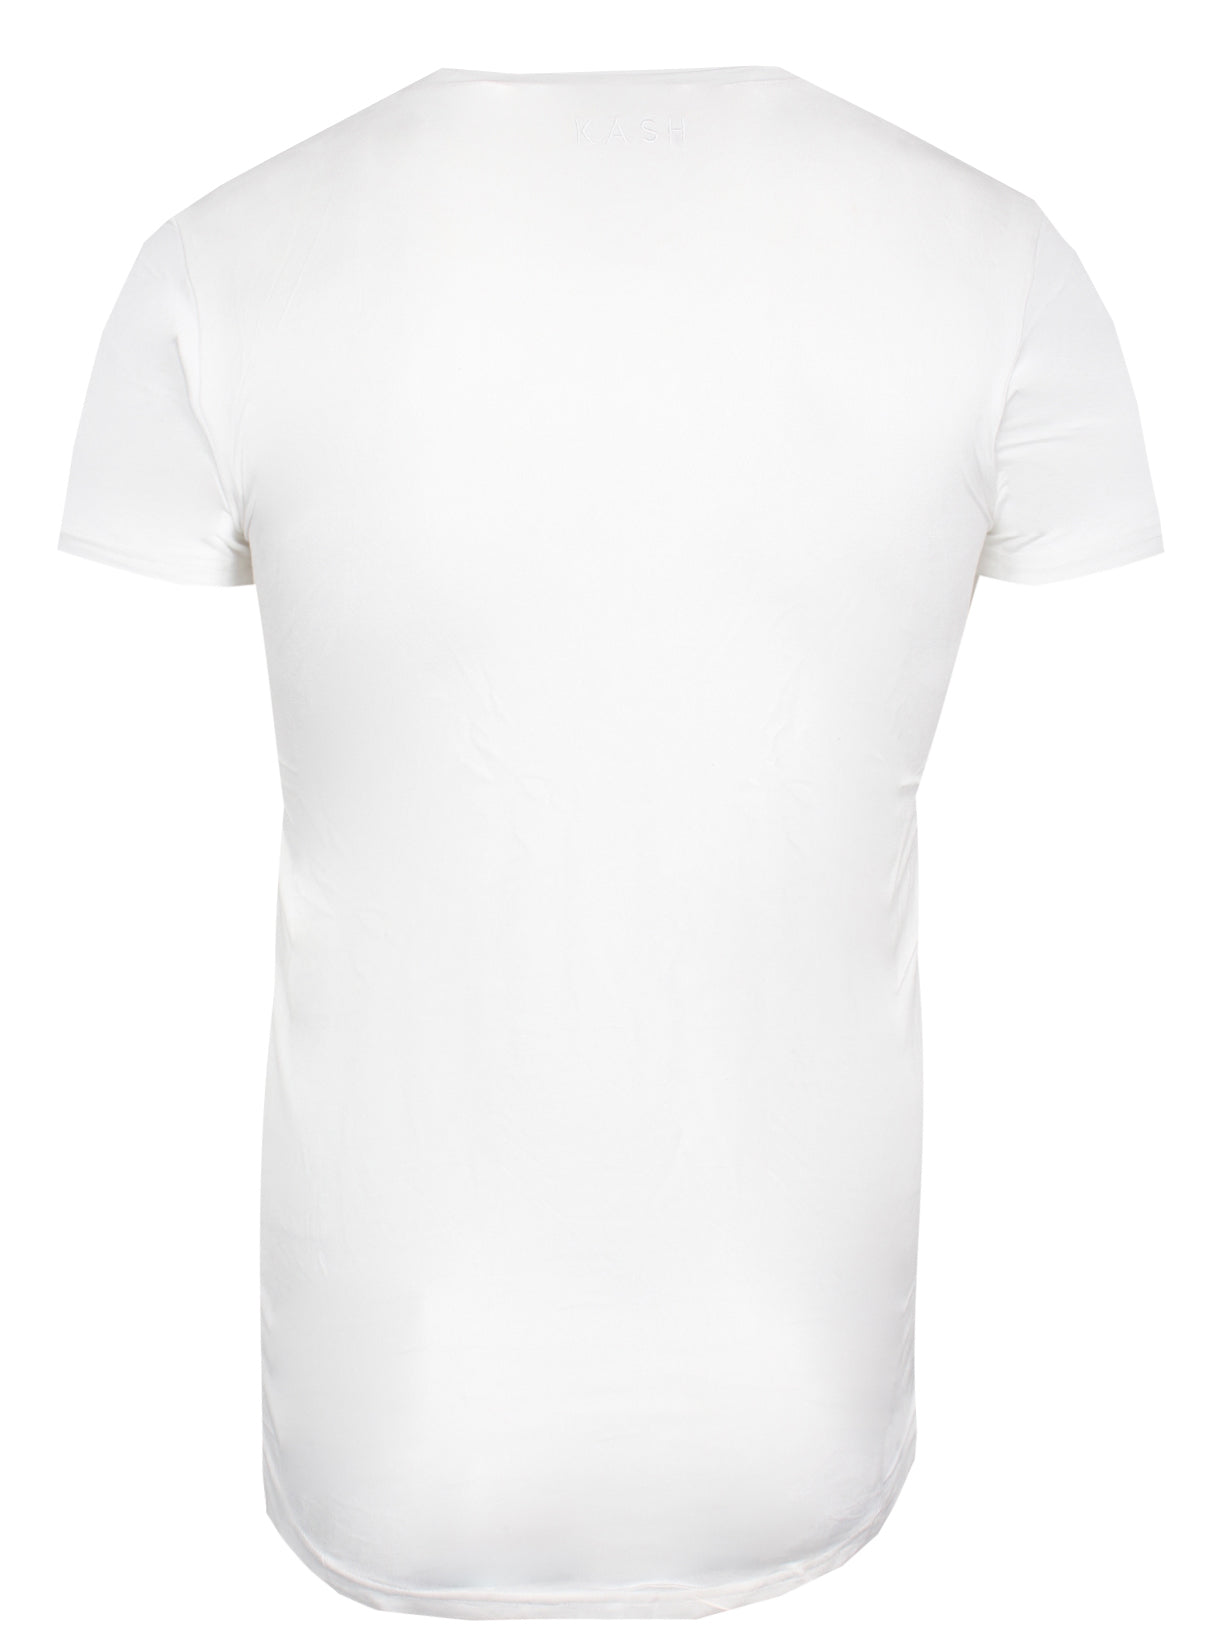 Men's Hamsa Short Sleeve V-neck Tee Shirt-White